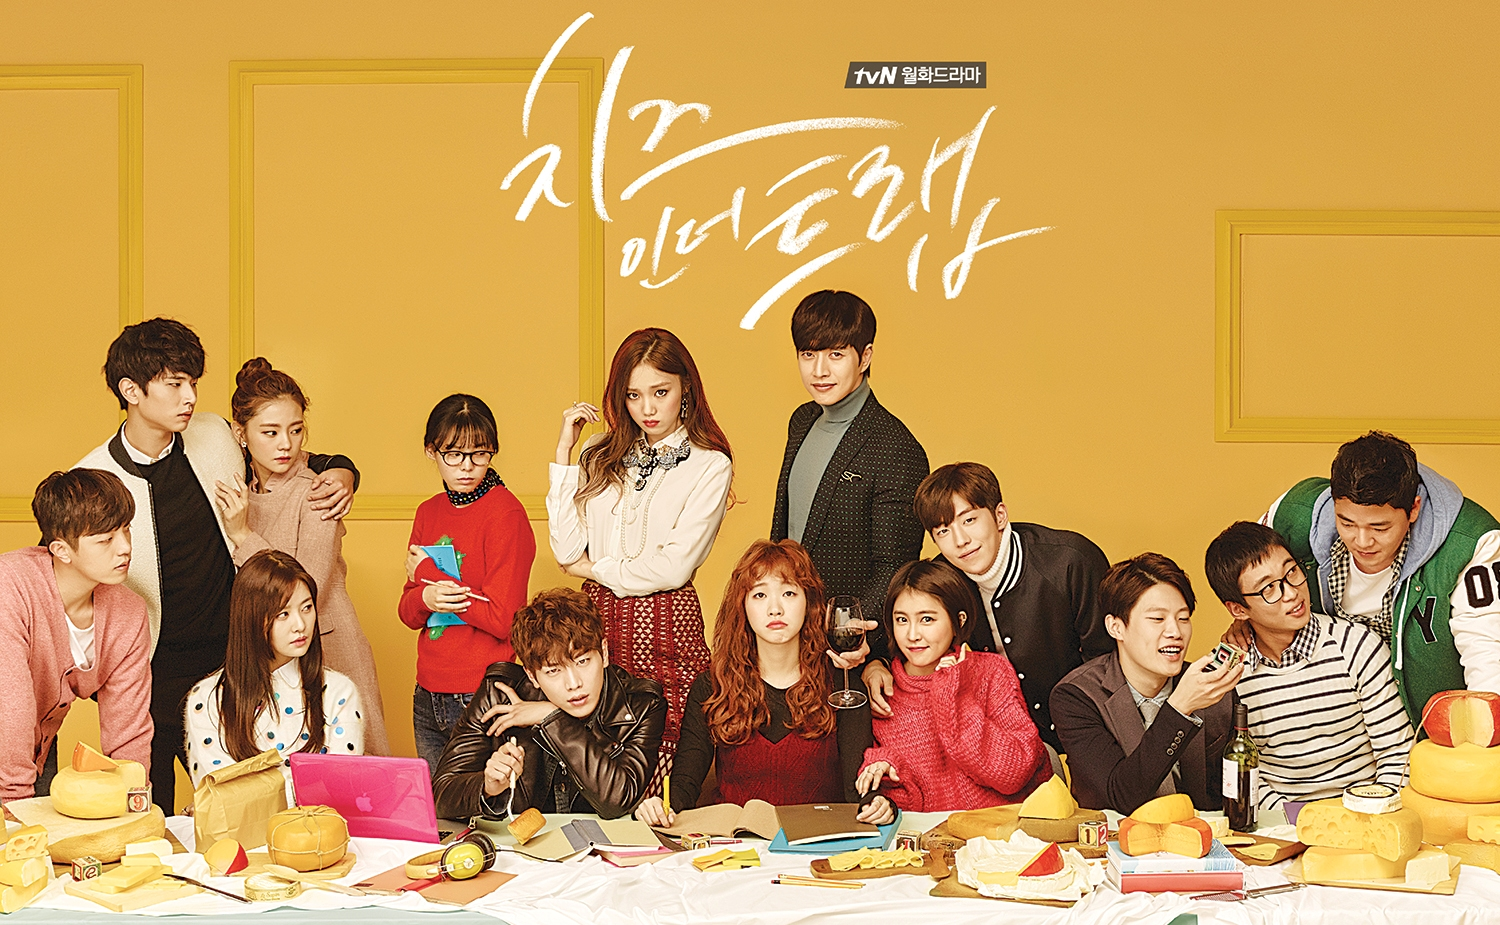 奶酪陷阱 Cheese in the trap 線上看